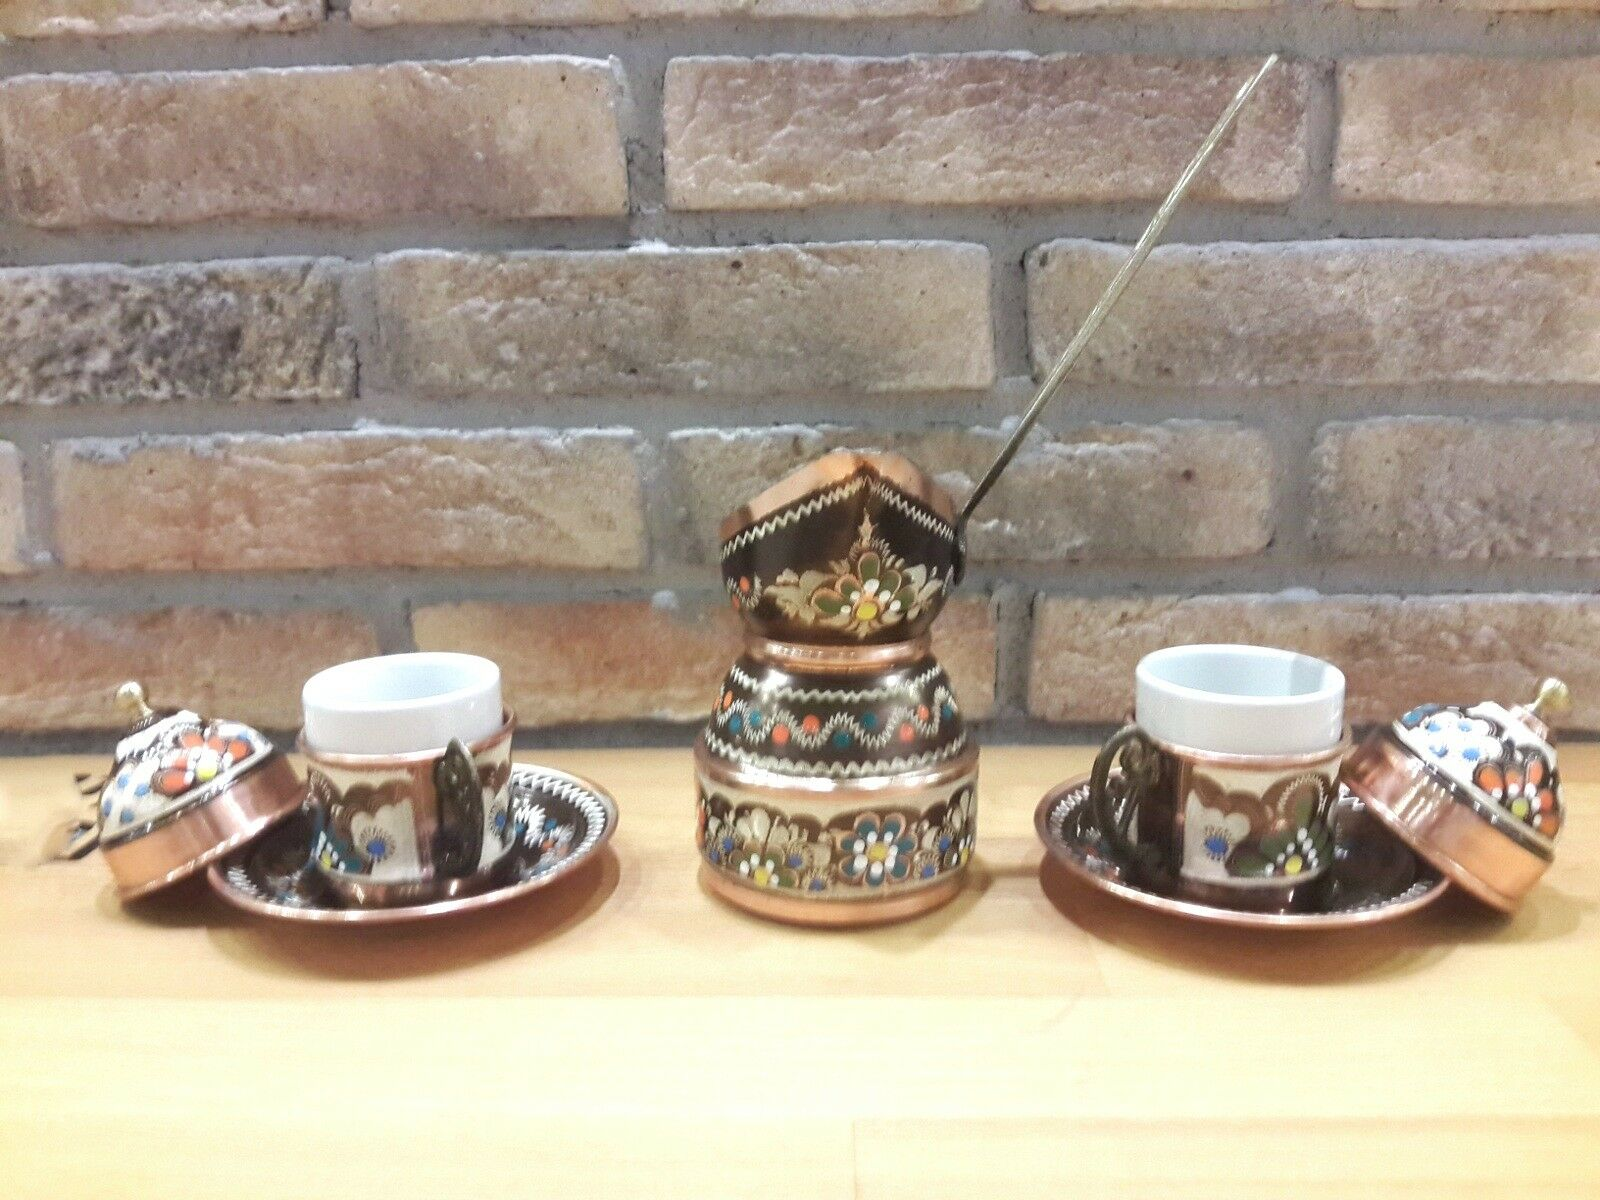 Turkish Coffee Serving Set-Coffee Porcelain Cup&Saucer,Large  Coffee Maker Pot